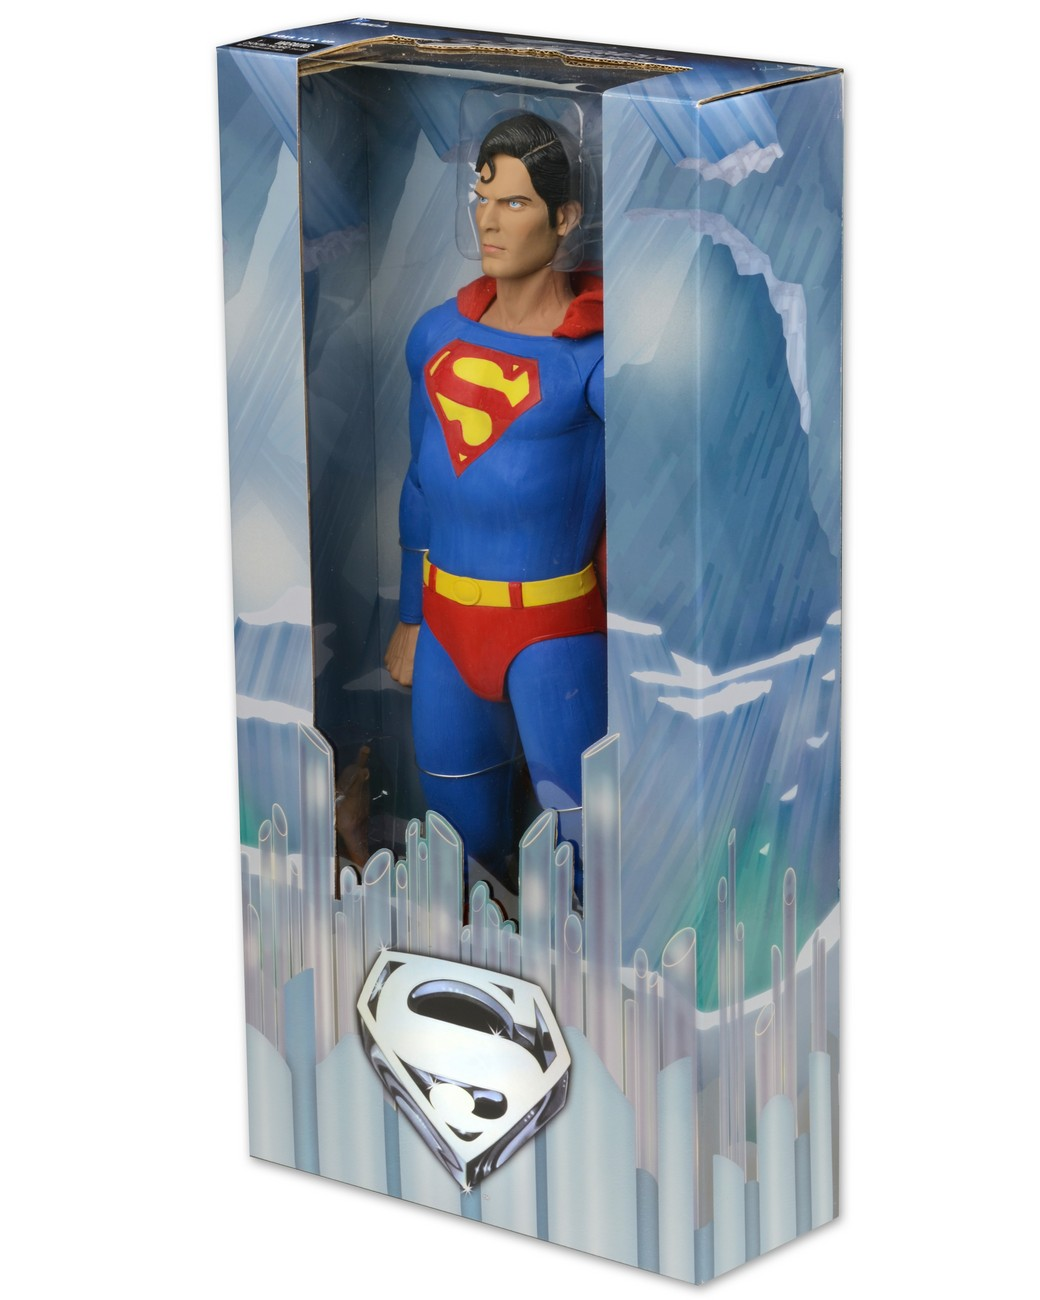 http://news.toyark.com/wp-content/uploads/sites/4/2015/06/Christopher-Reeve-18-Inch-Superman-by-NECA-007.jpg